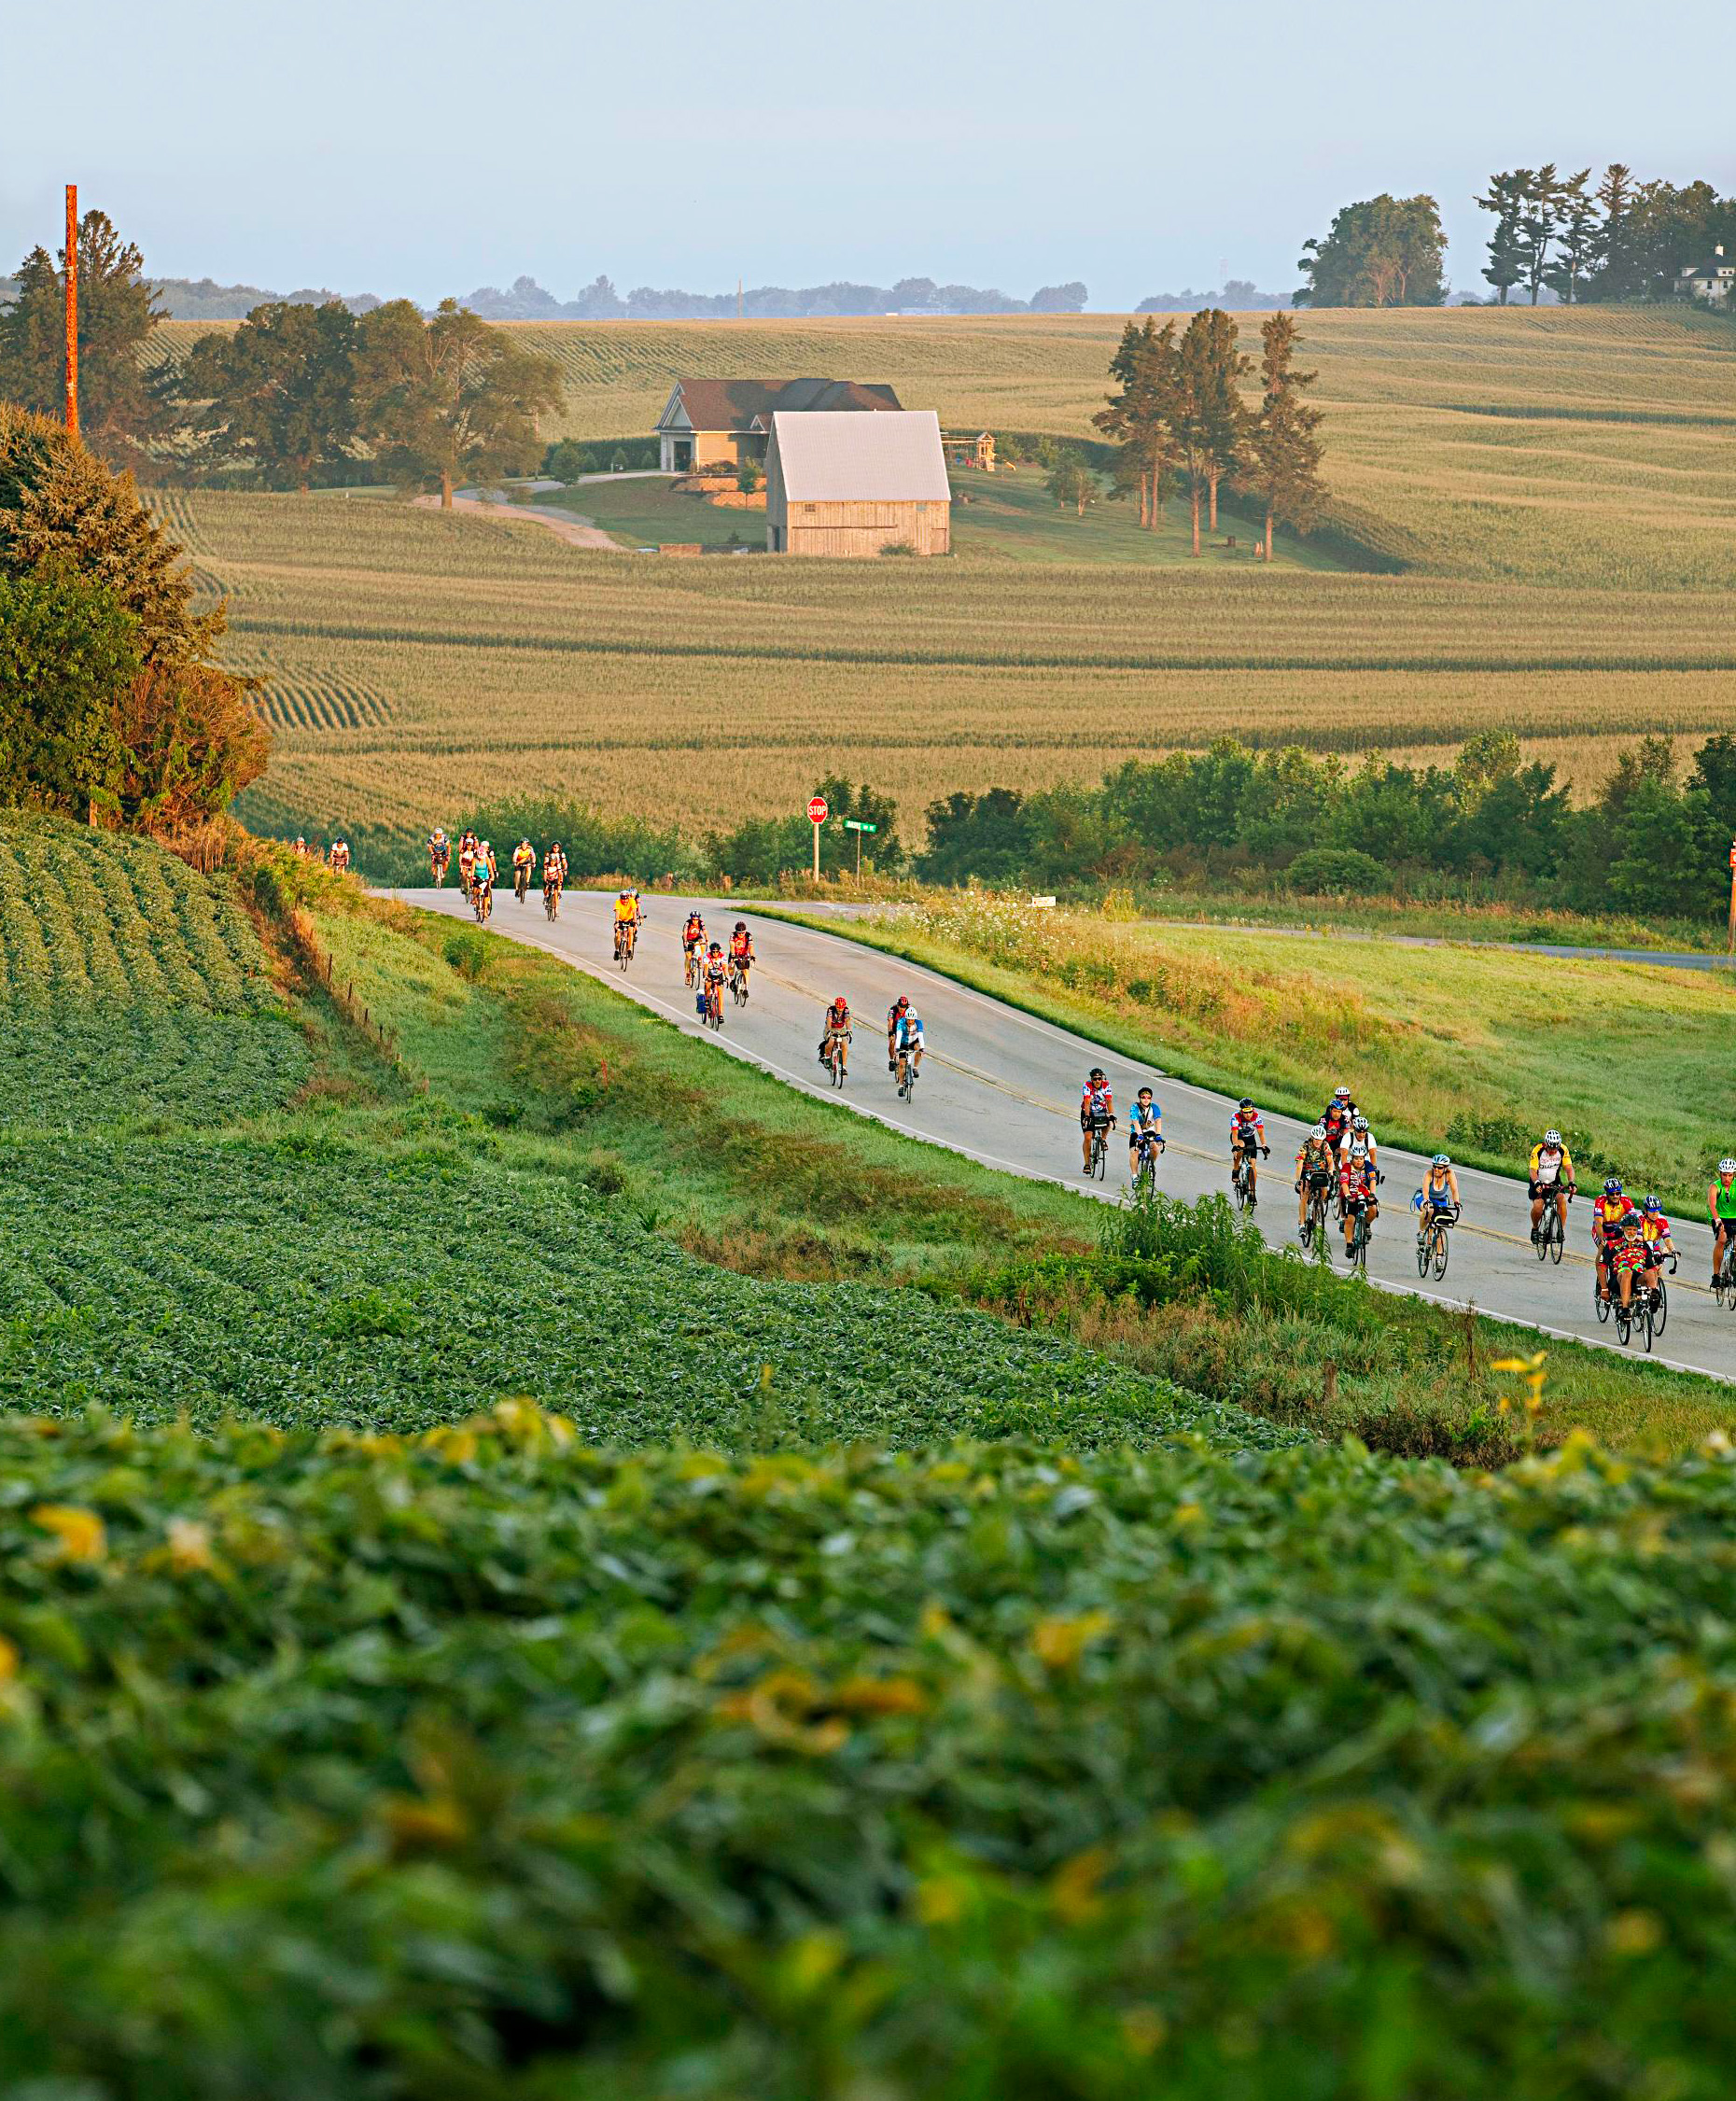 RAGBRAI riders biking through a field.